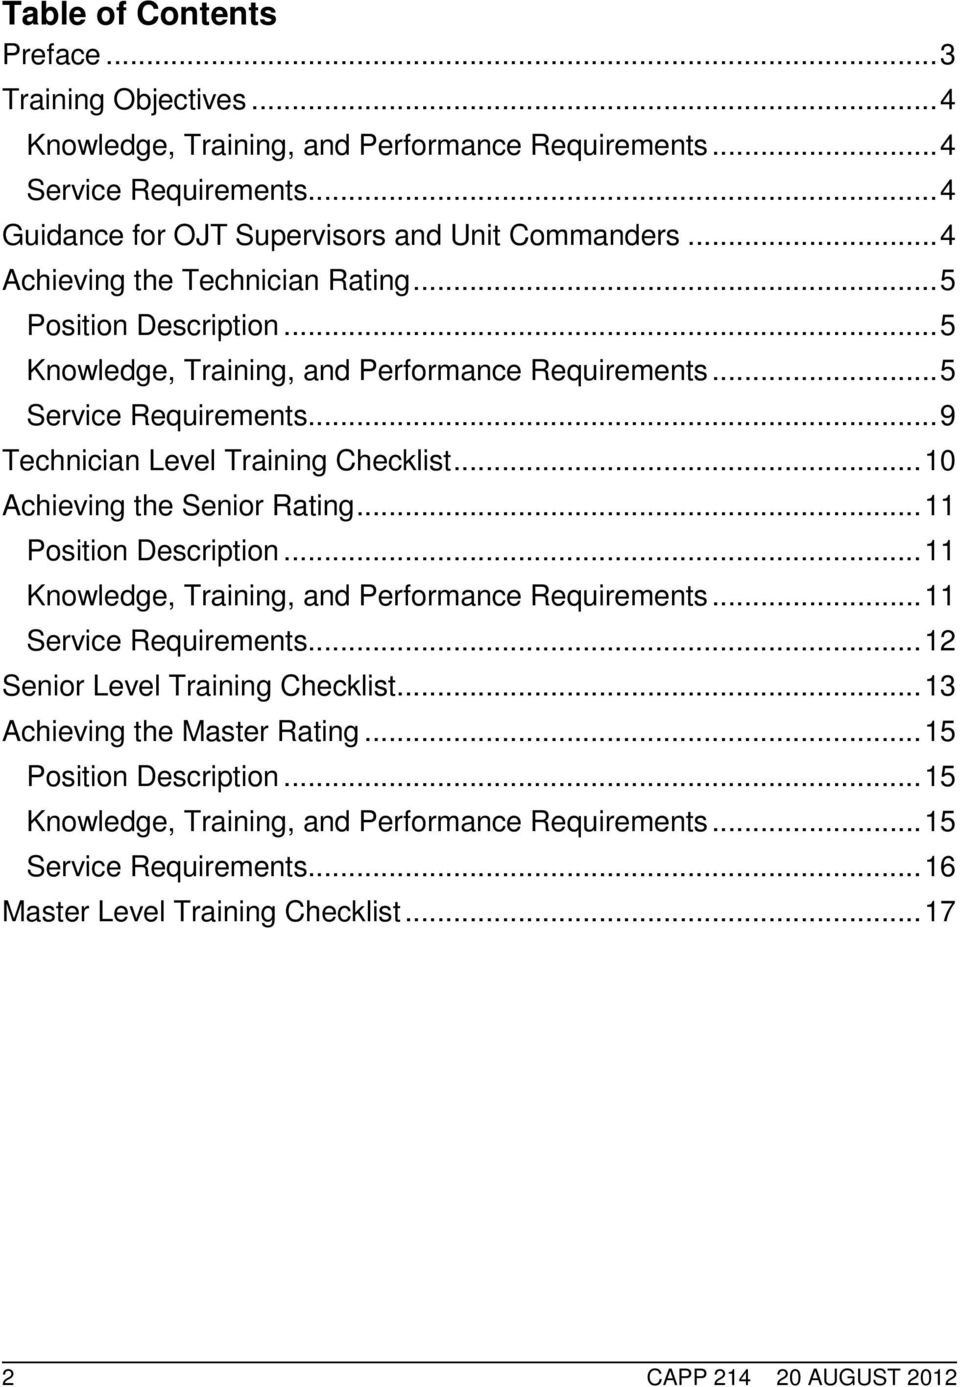 .. 10 Achieving the Senior Rating... 11 Position Description... 11 Knowledge, Training, and Performance Requirements... 11 Service Requirements... 12 Senior Level Training Checklist.